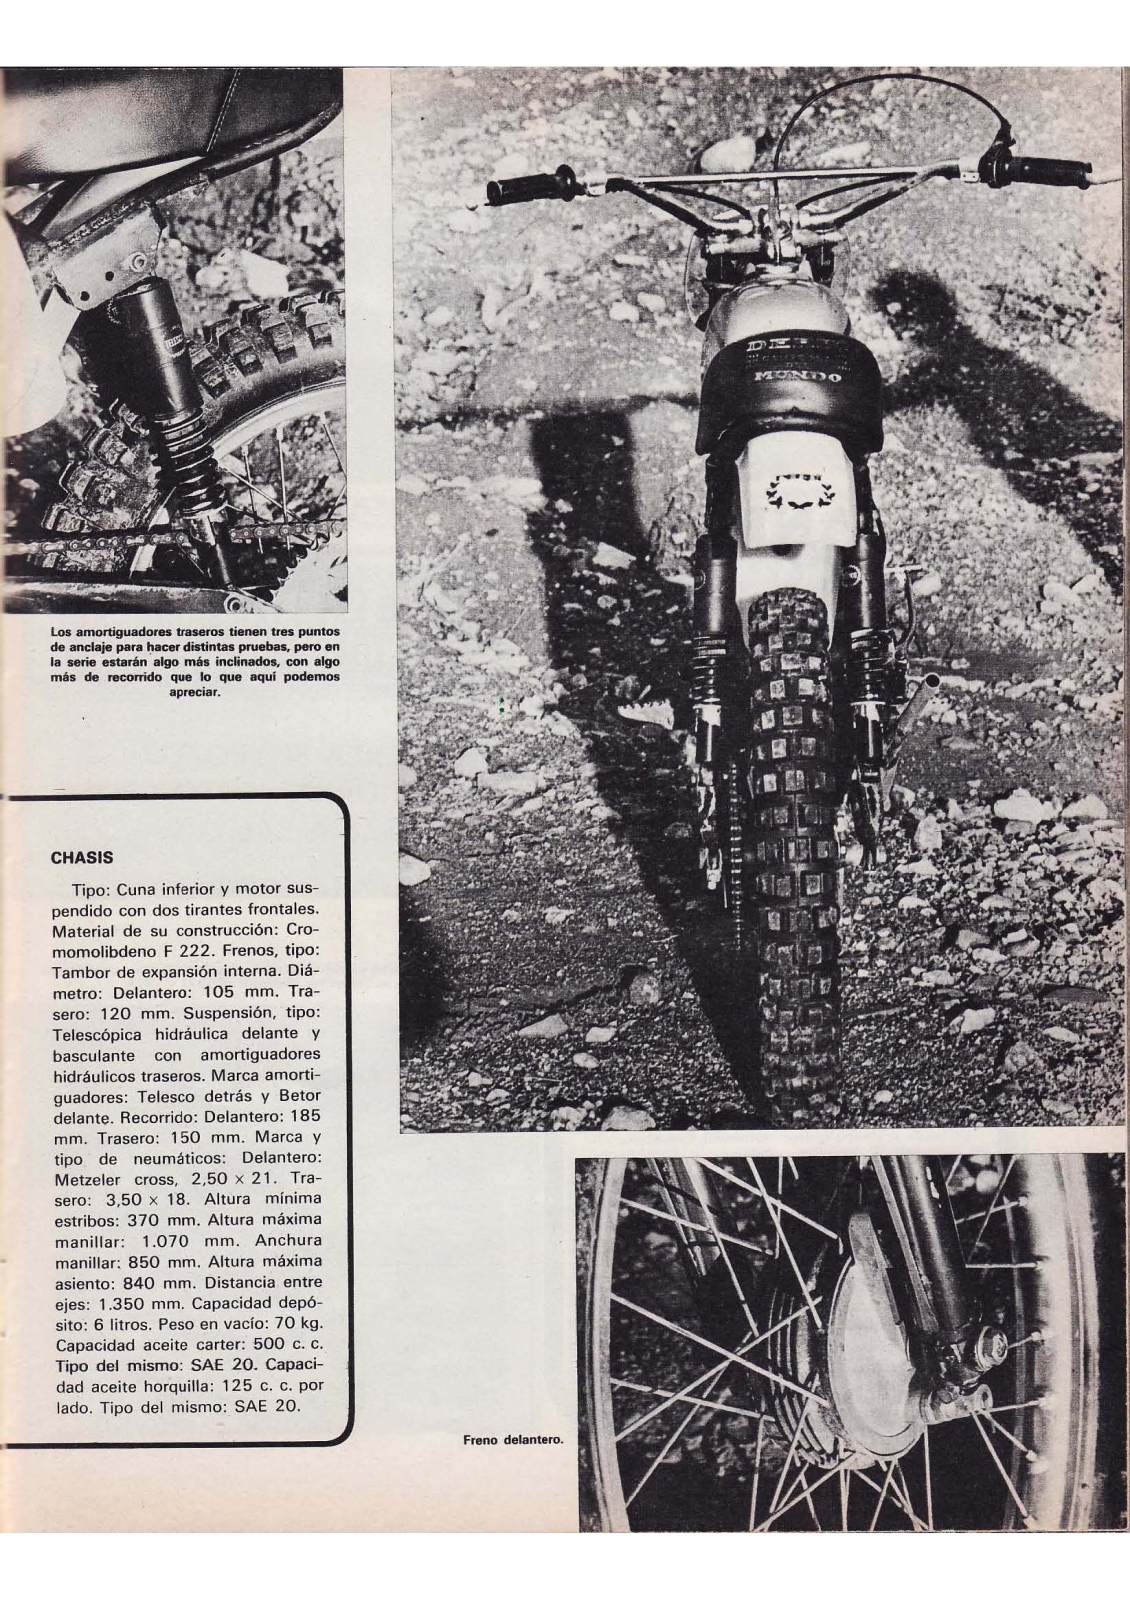 Proyecto Derbi Cross Trofeo Junior 1975/76 2upaczq